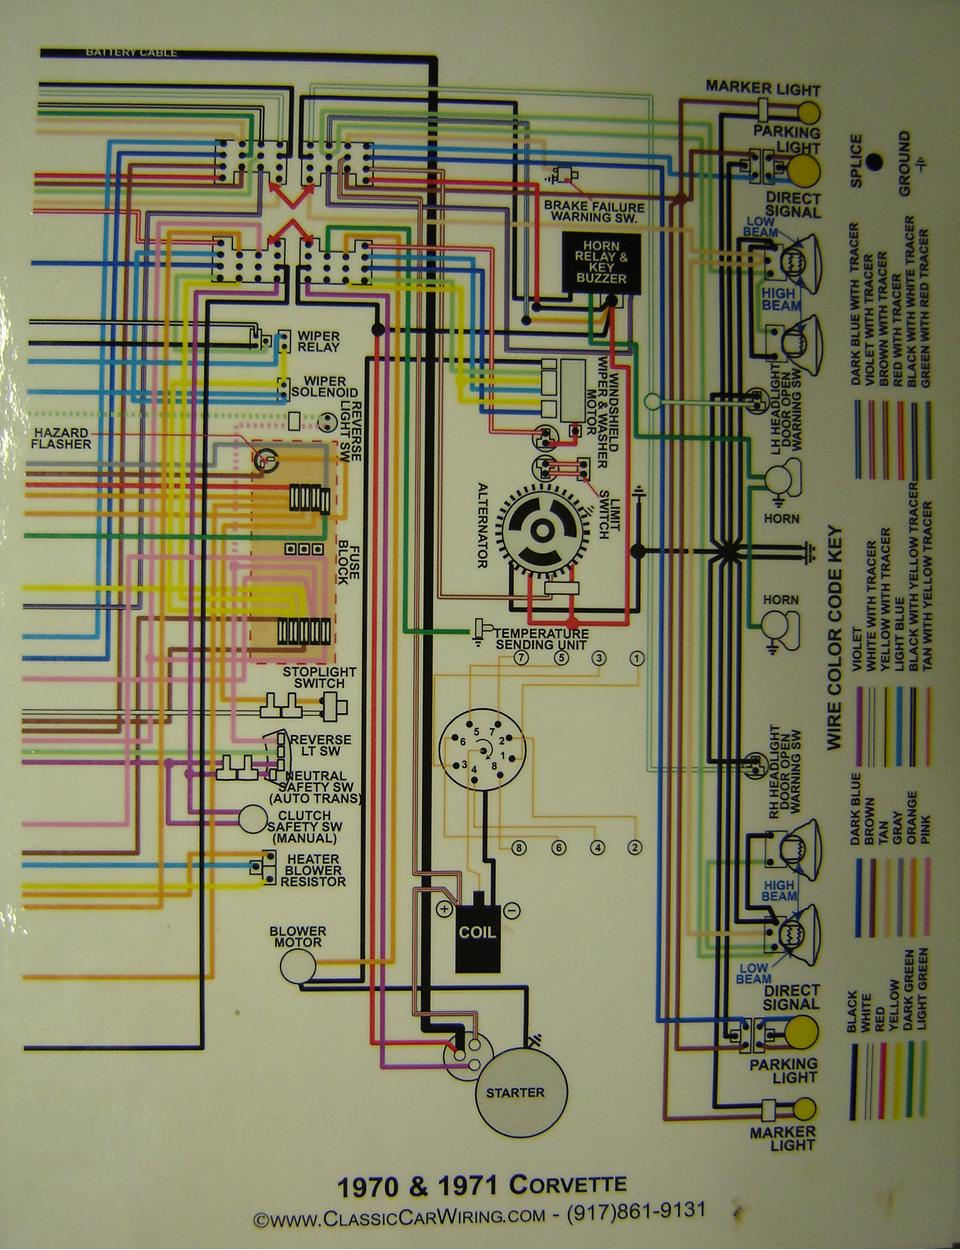 Diagrams Wiring Diagram Chevelle Malibu on 1975 corvette stingray wiring diagram, 1972 corvette wiring diagram, 1972 monte carlo wiring diagram, 1972 camaro wiring diagram, 1972 nova wiring diagram, 1972 el camino wiring diagram, 1972 impala wiring diagram, 1972 blazer wiring diagram, 72 nova wiring diagram, 1968 chevelle wiring diagram,